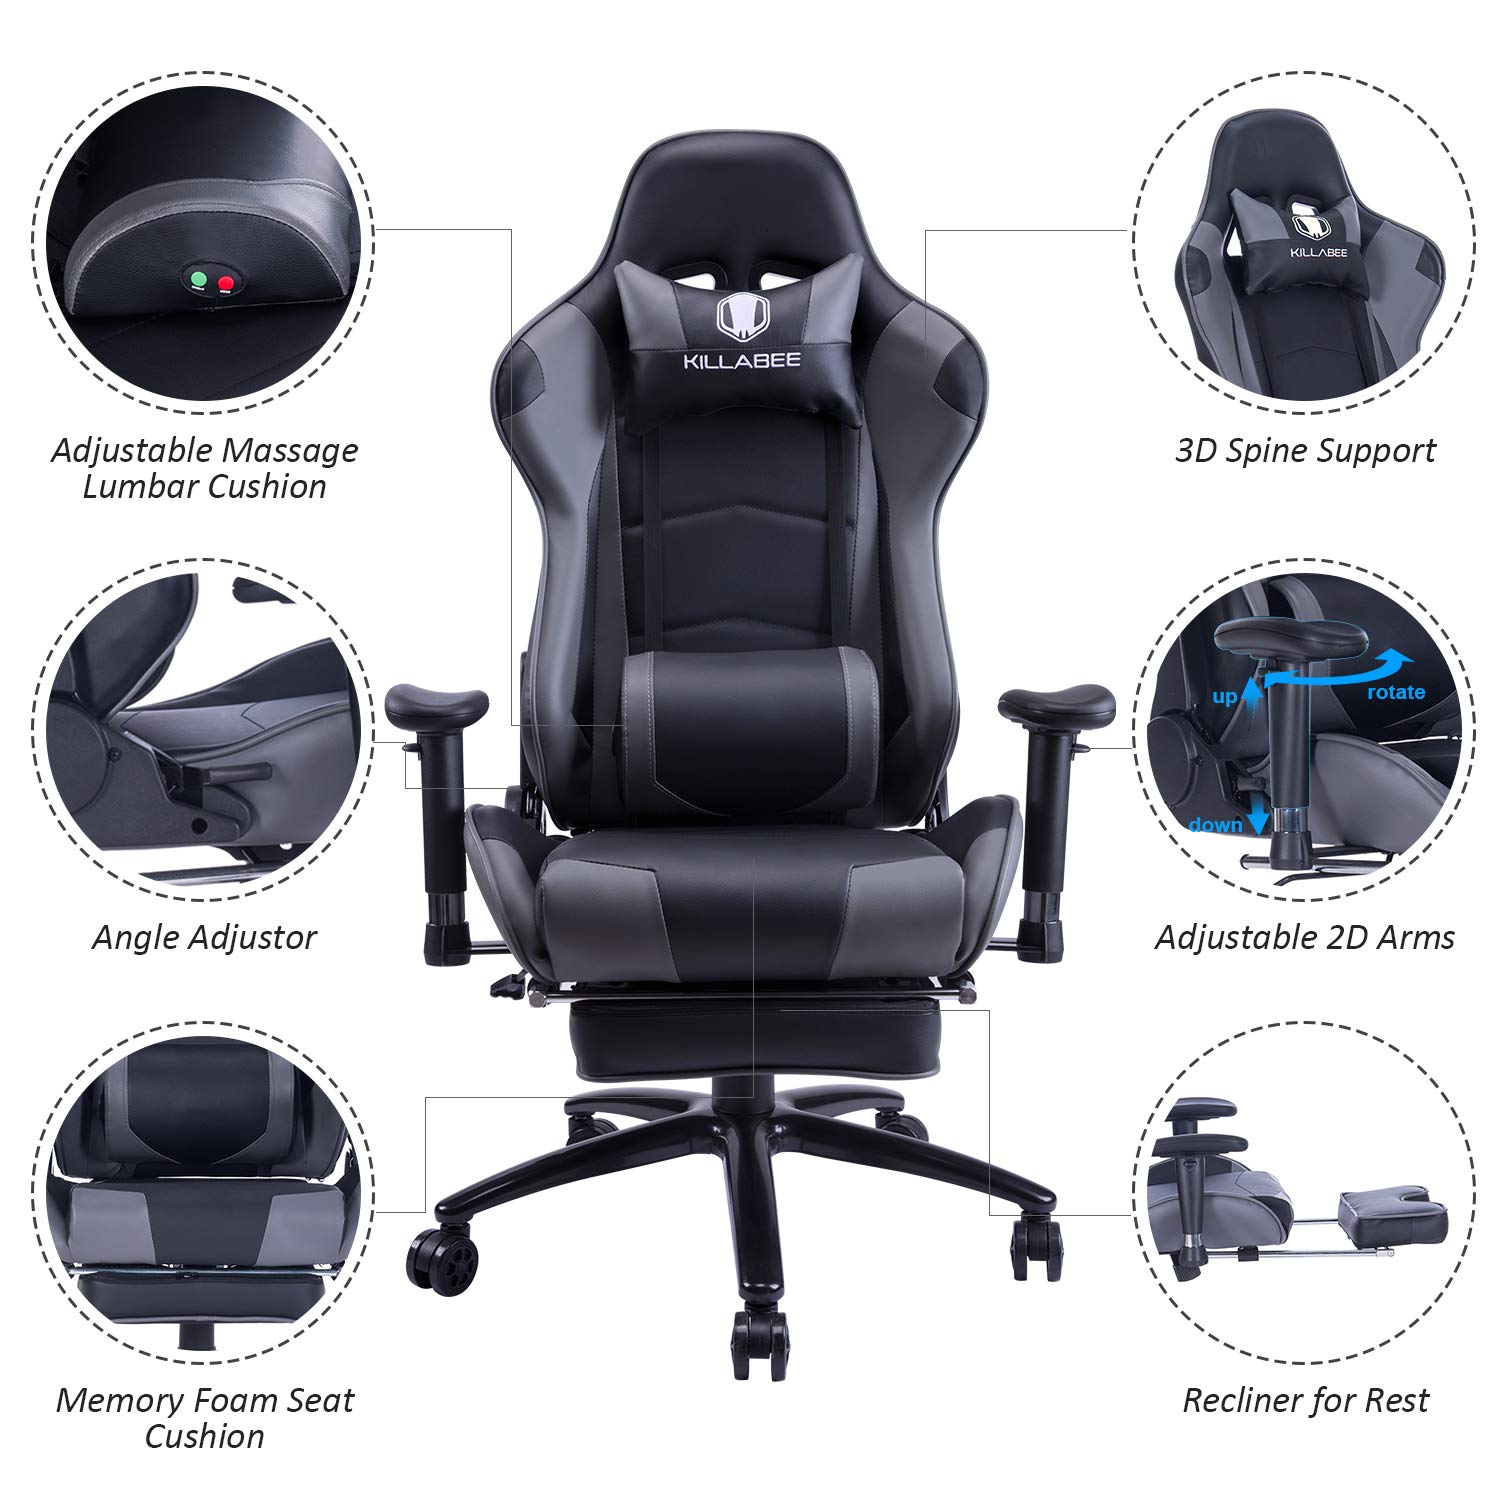 KILLABEE Big and Tall 350lb Massage Gaming Chair Metal Base - Adjustable Massage Lumbar Cushion, Retractable Footrest High Back Ergonomic Leather Racing Computer Desk Executive Office Chair by KILLABEE (Image #3)